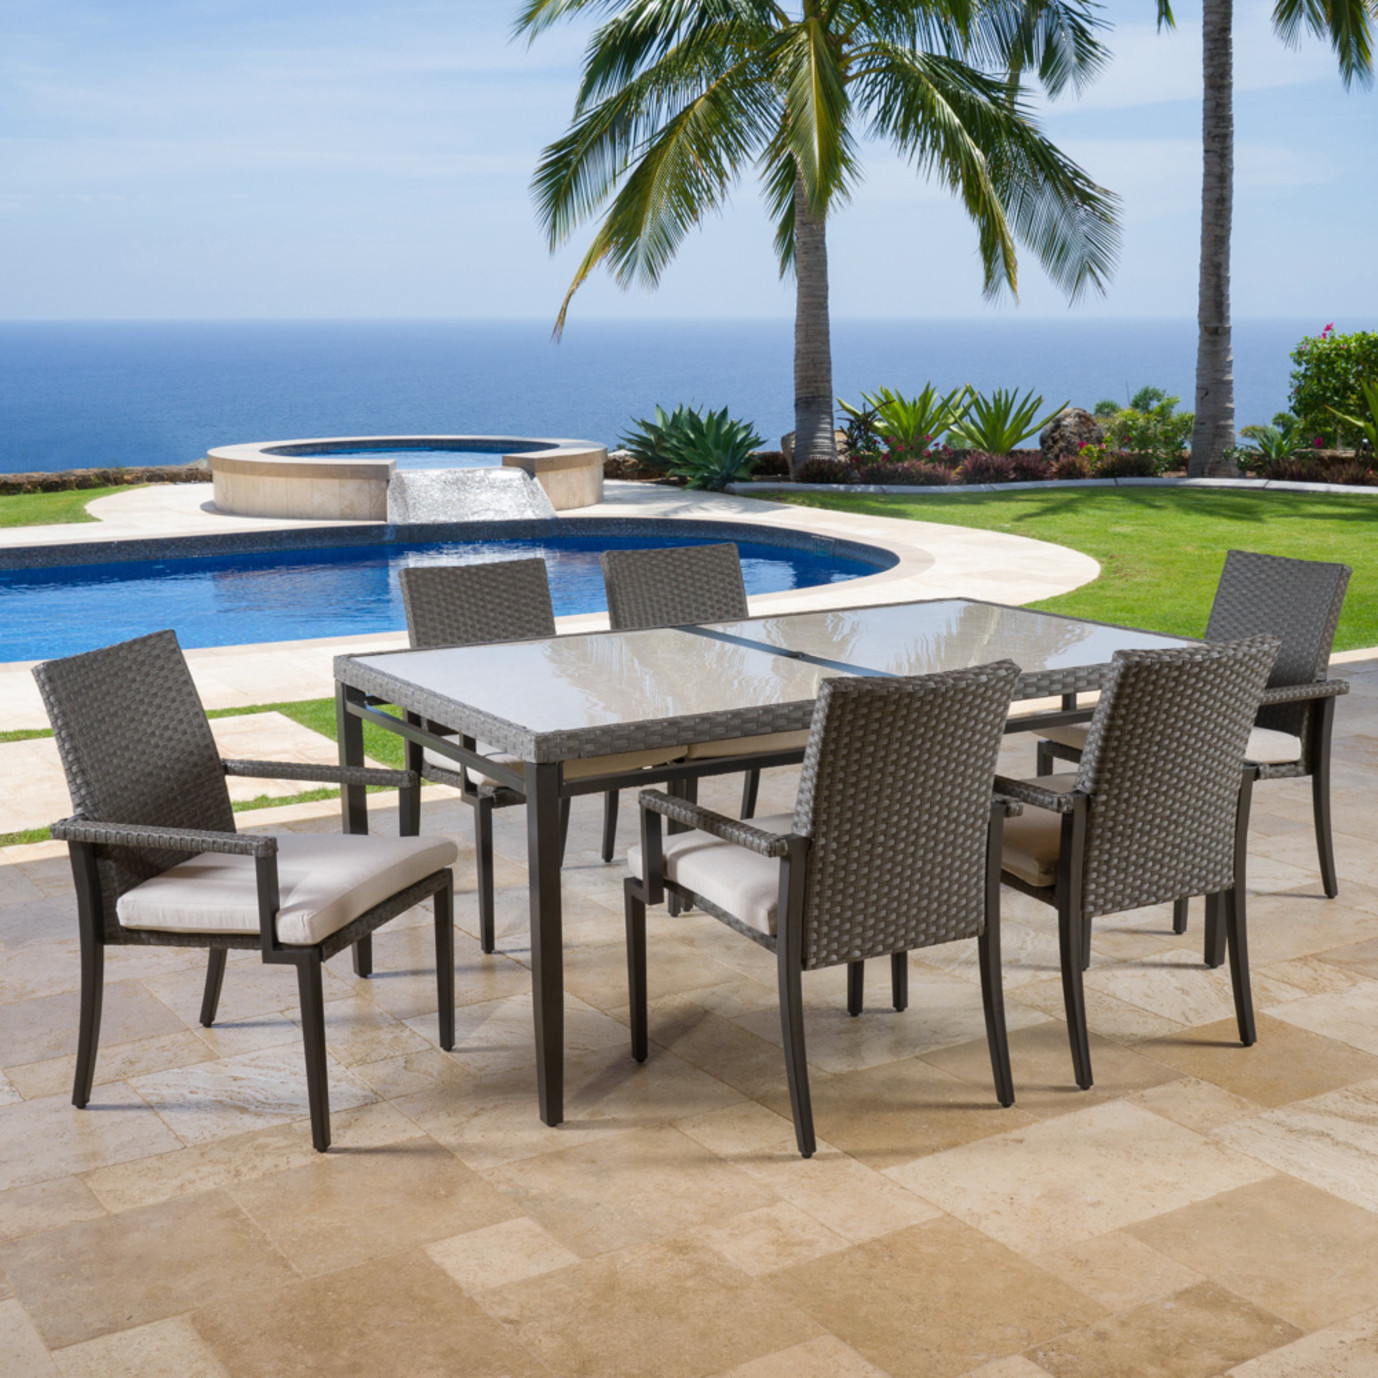 Vistano™ 7pc Outdoor Dining Set